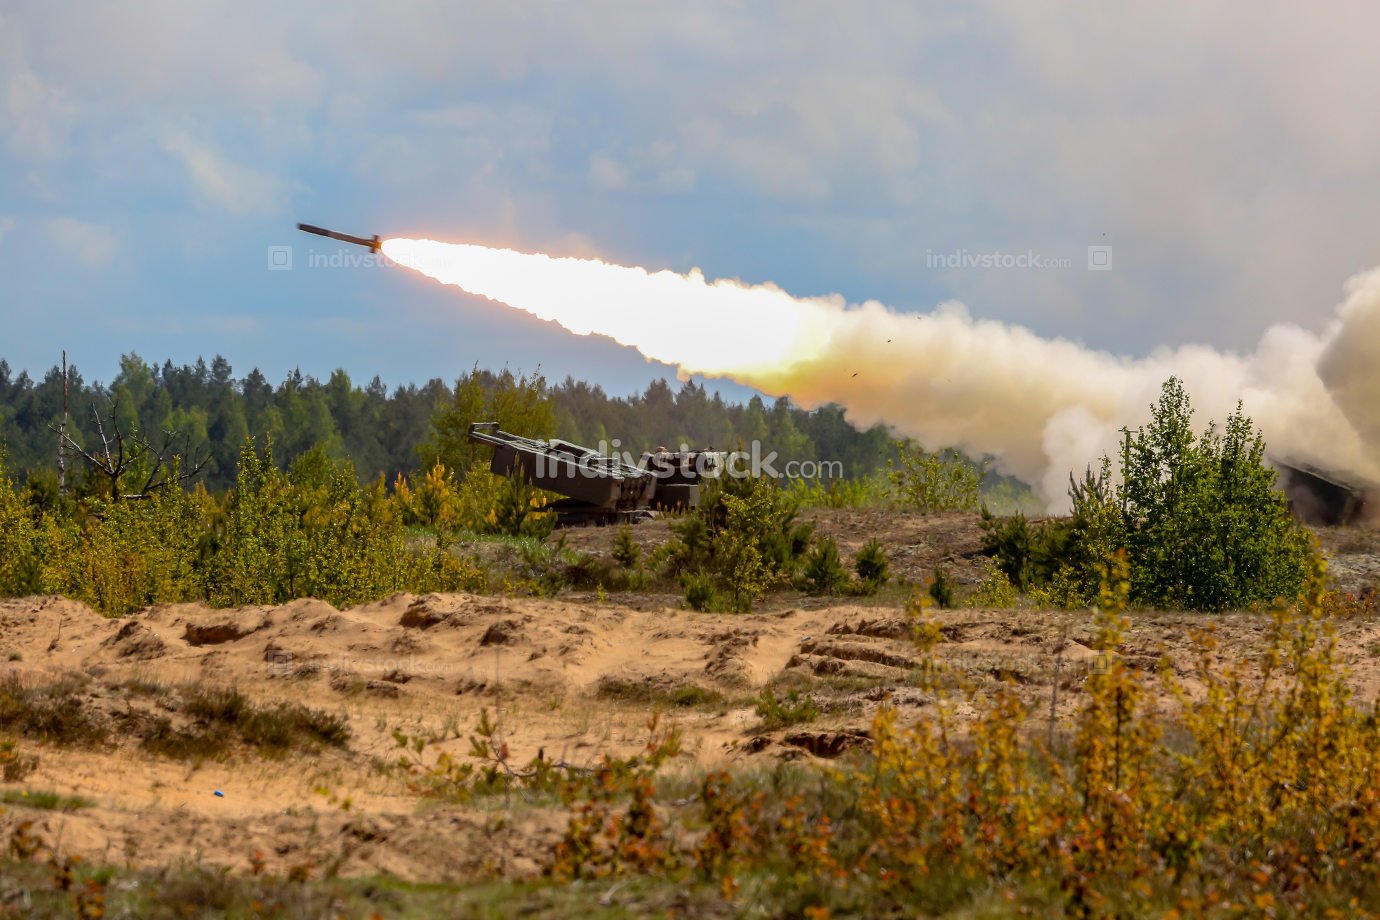 Launching rocket in military training Saber Strike in Latvia.